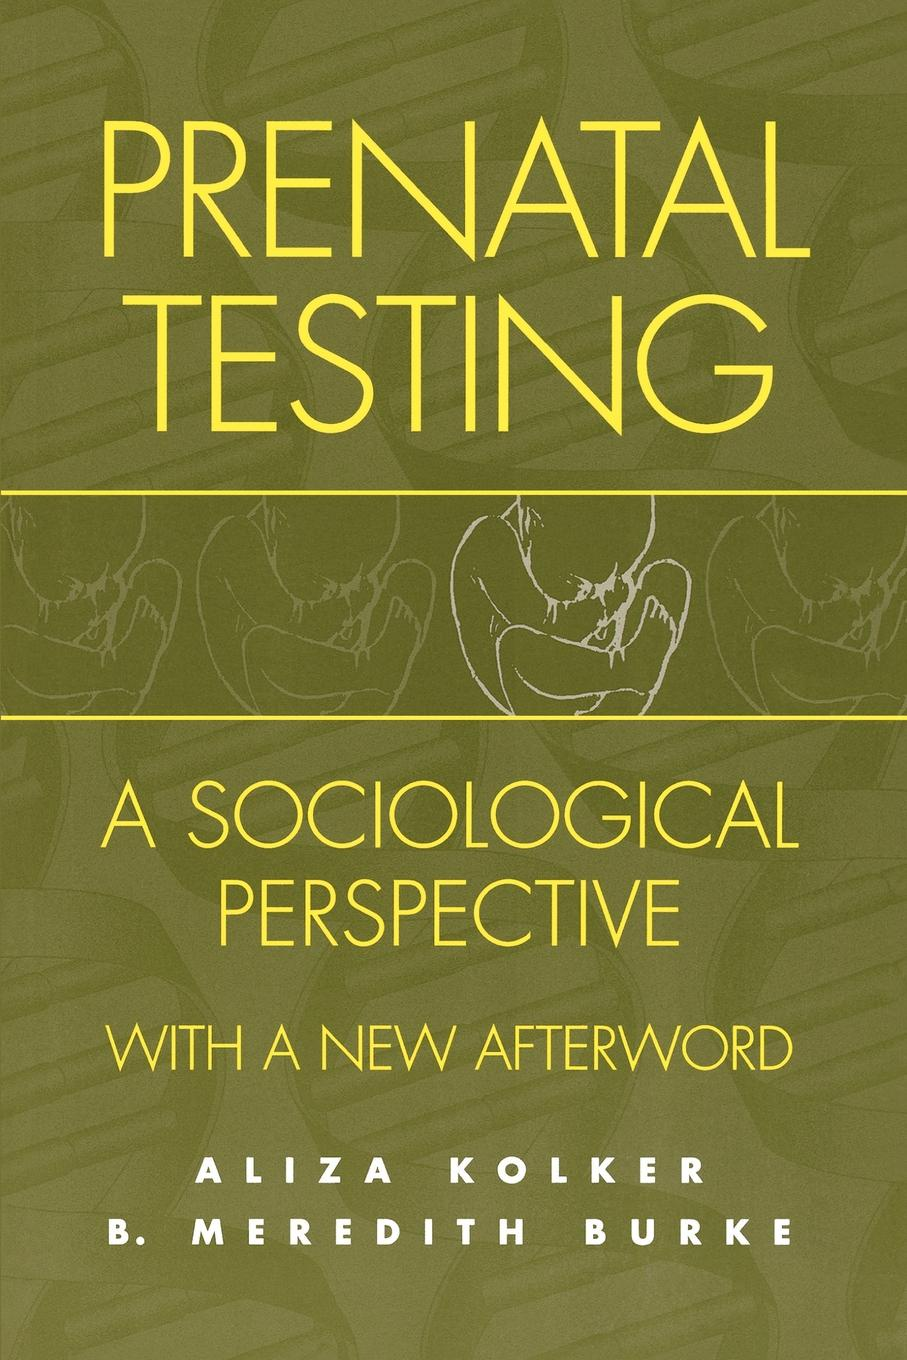 Aliza Meredith Kolker, B. Burke, Aliza Kolker Prenatal Testing. A Sociological Perspective, with a New Afterword